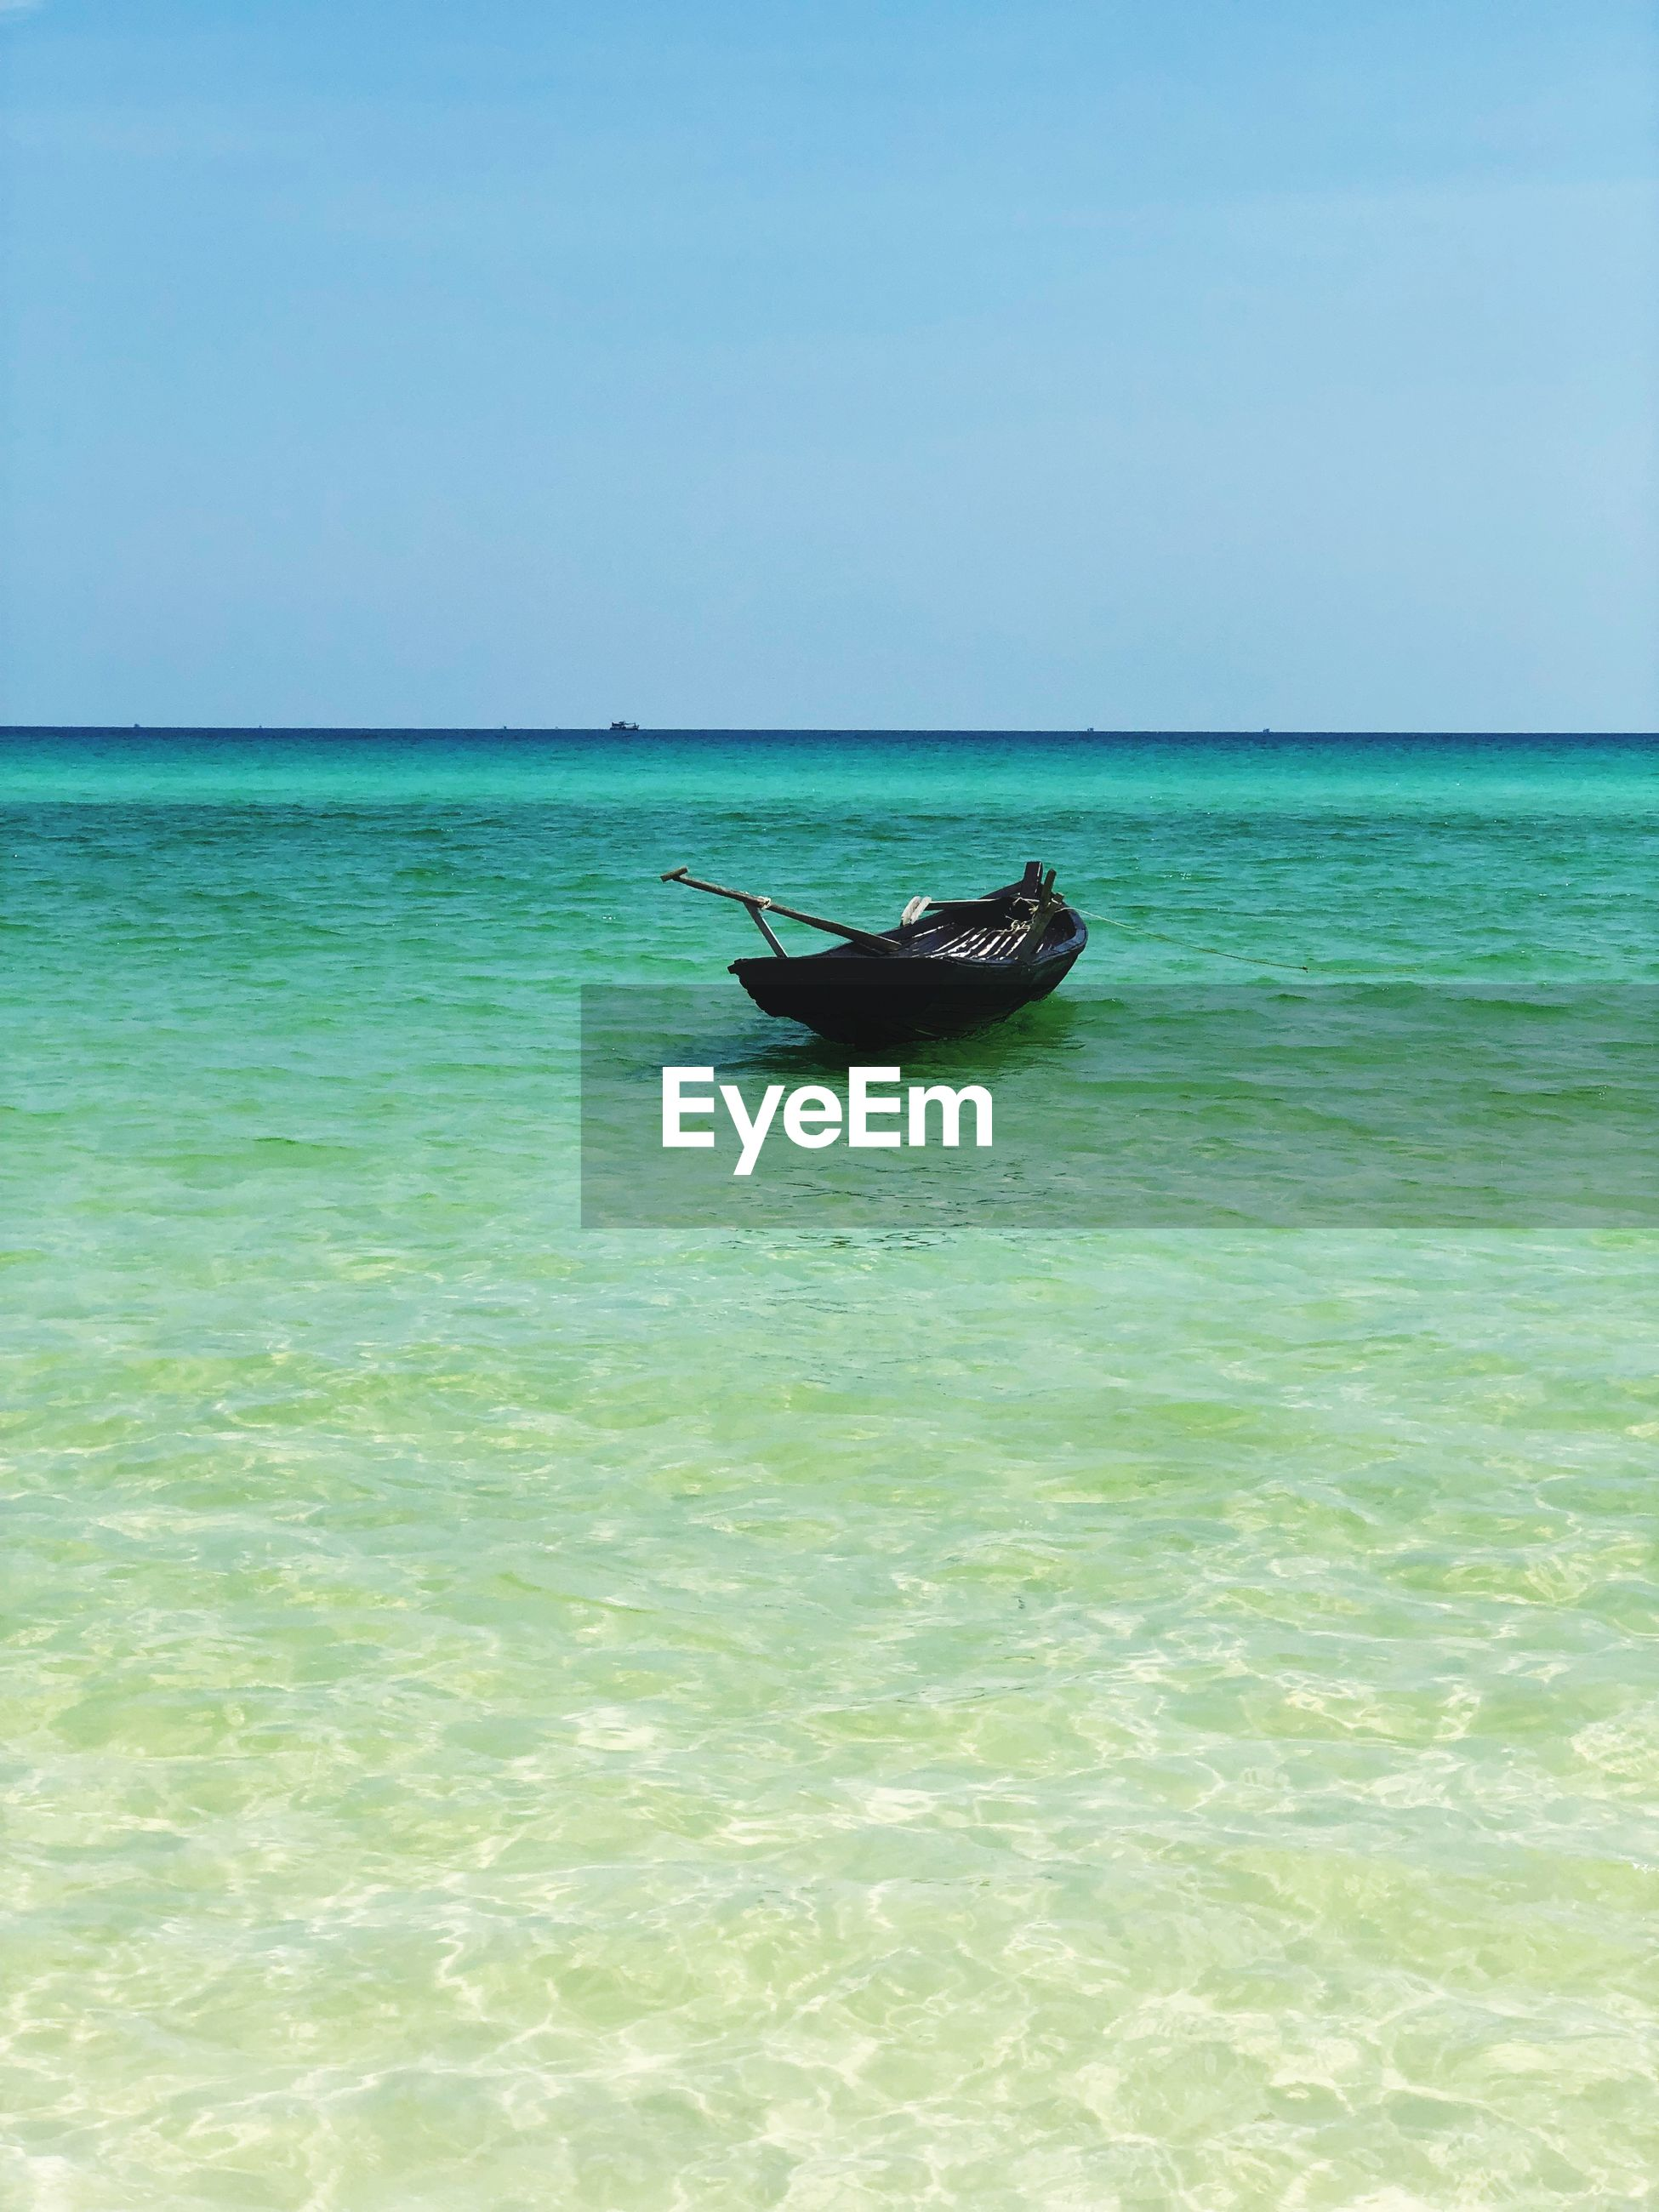 VIEW OF BOAT IN SEA AGAINST CLEAR SKY